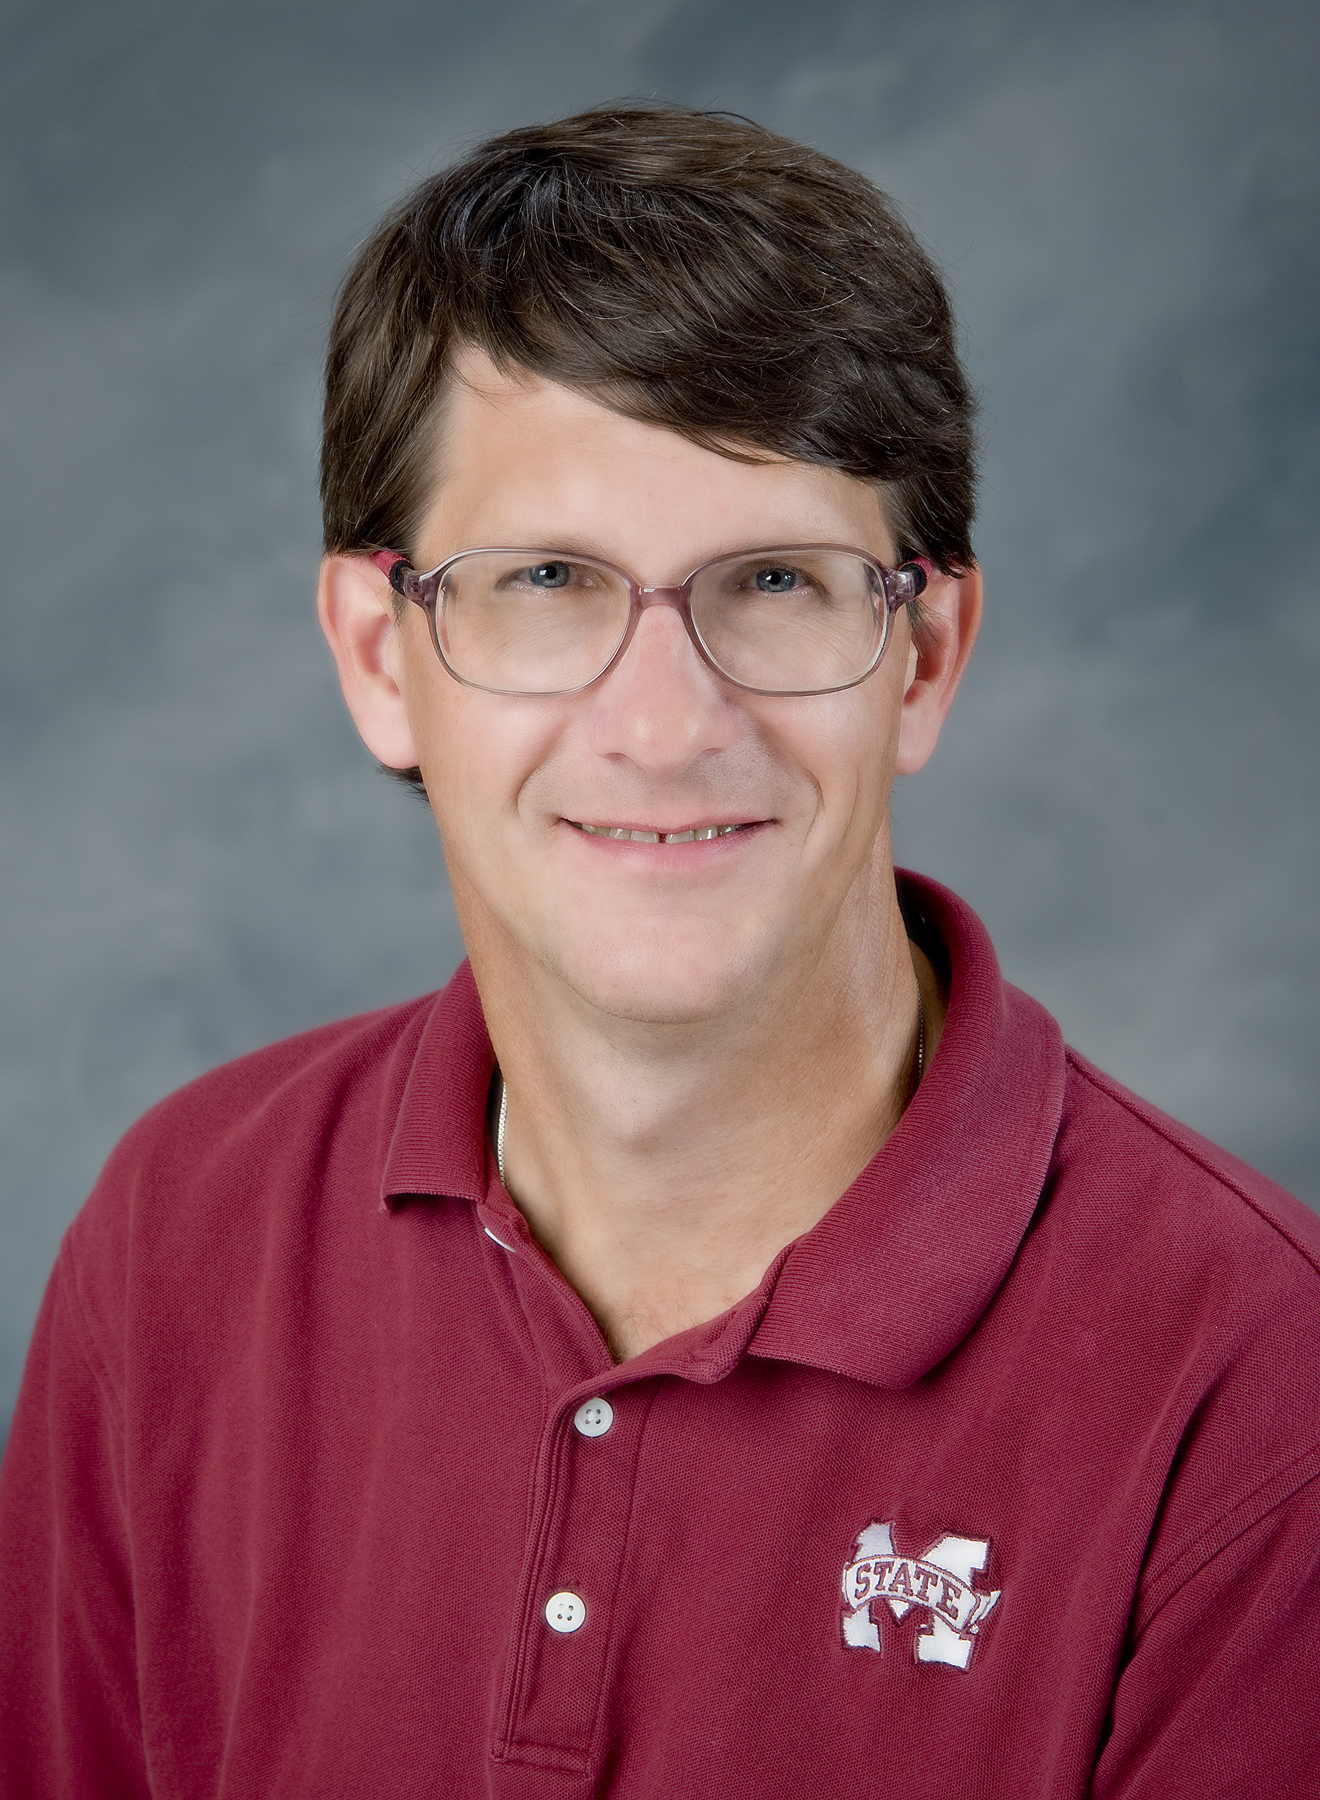 Mr. Holder Receives Arts & Sciences Teaching Award